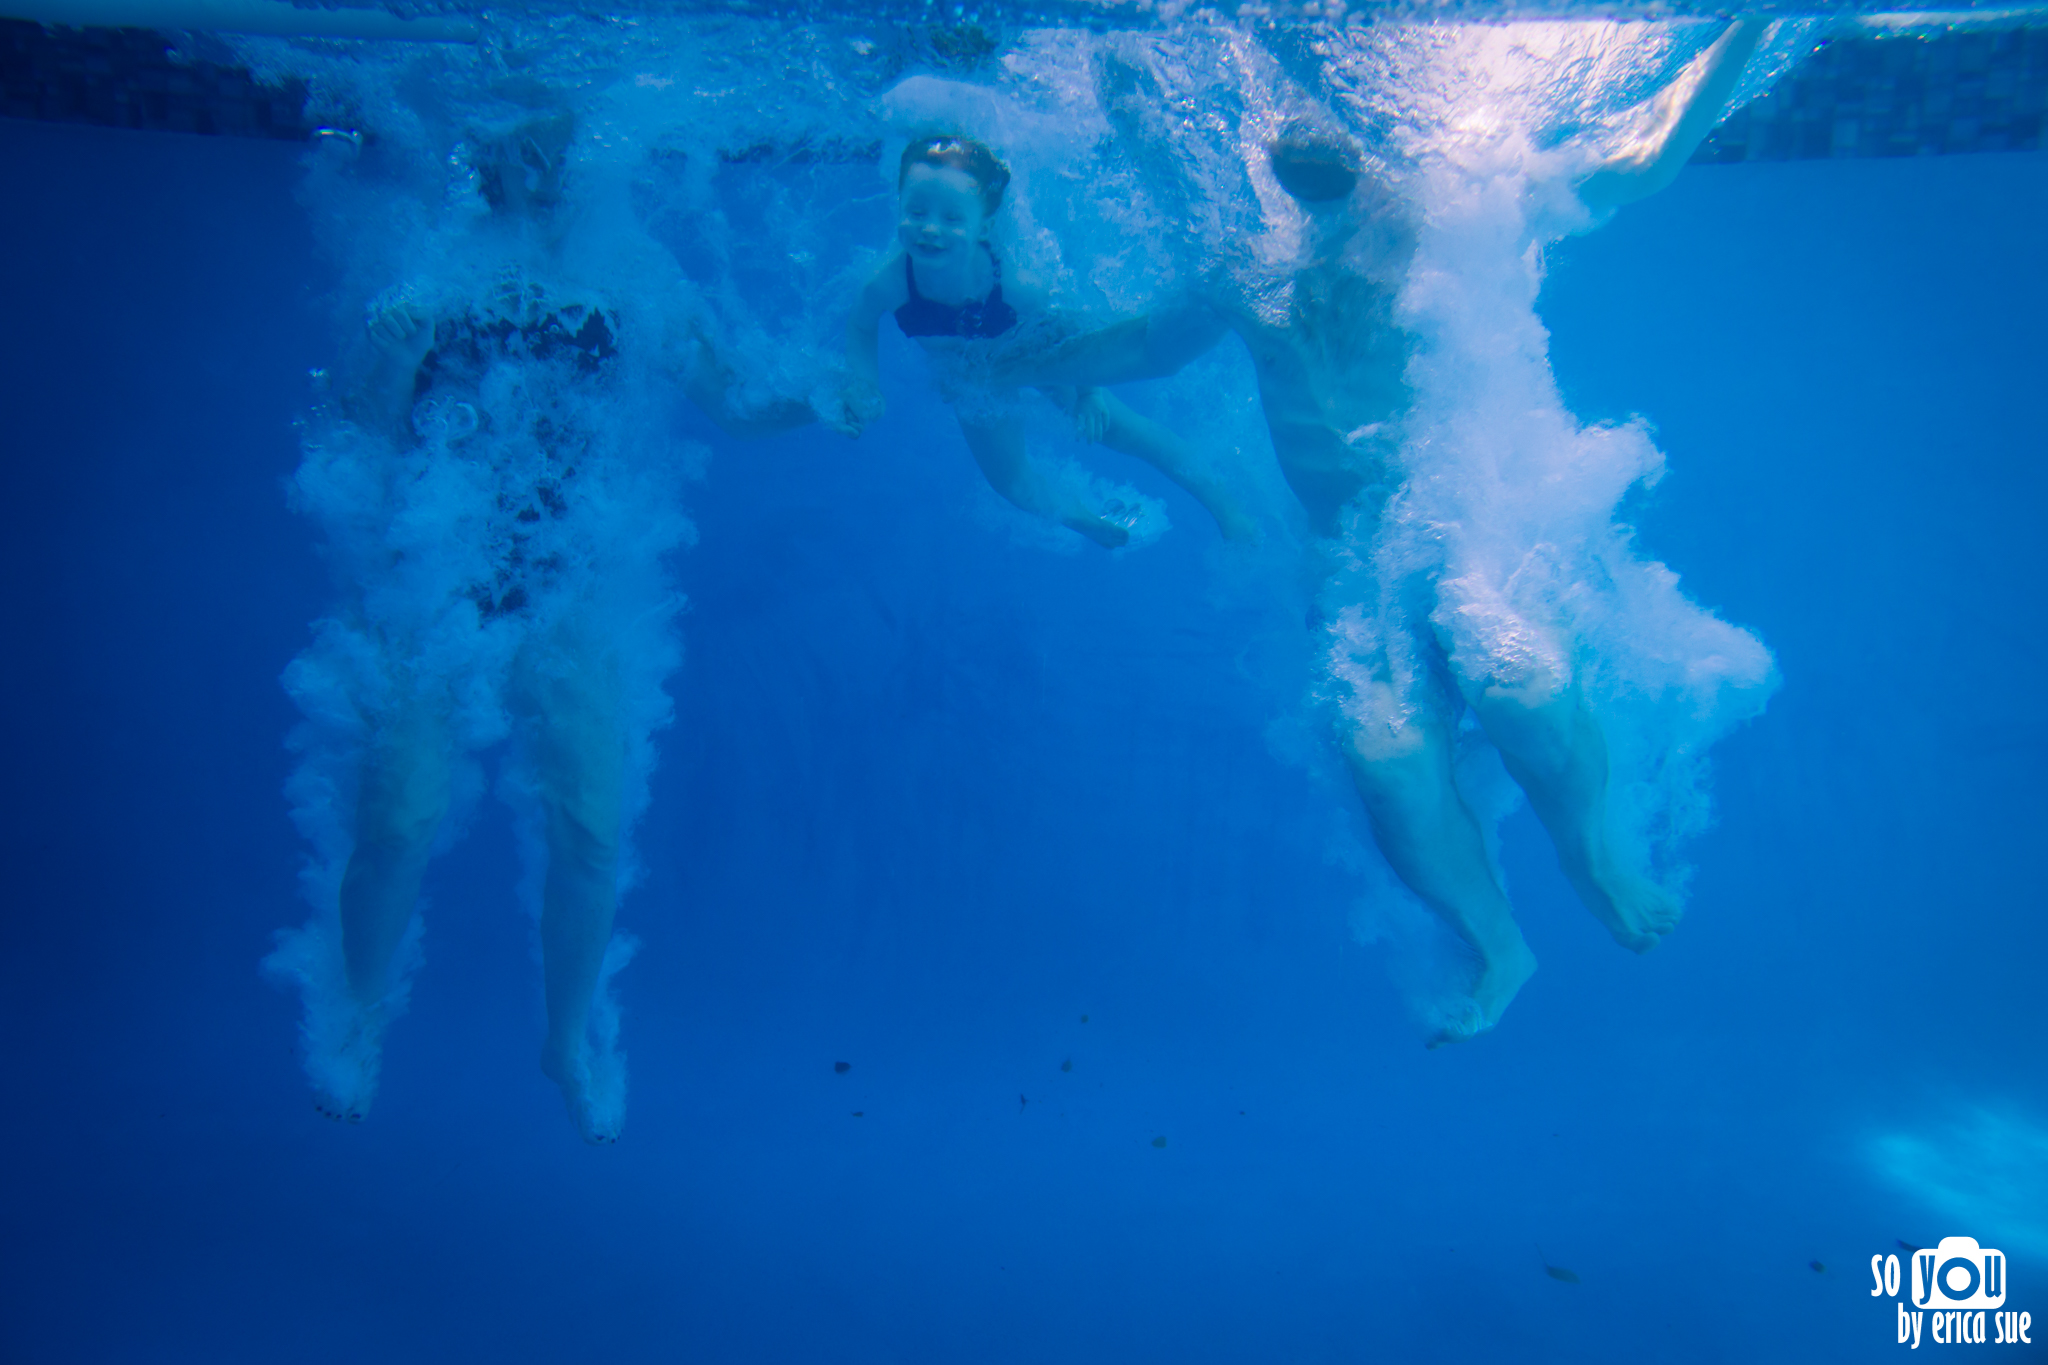 underwater-swim-family-photography-ft-lauderdale-so-you-by-erica-sue-1381.jpg